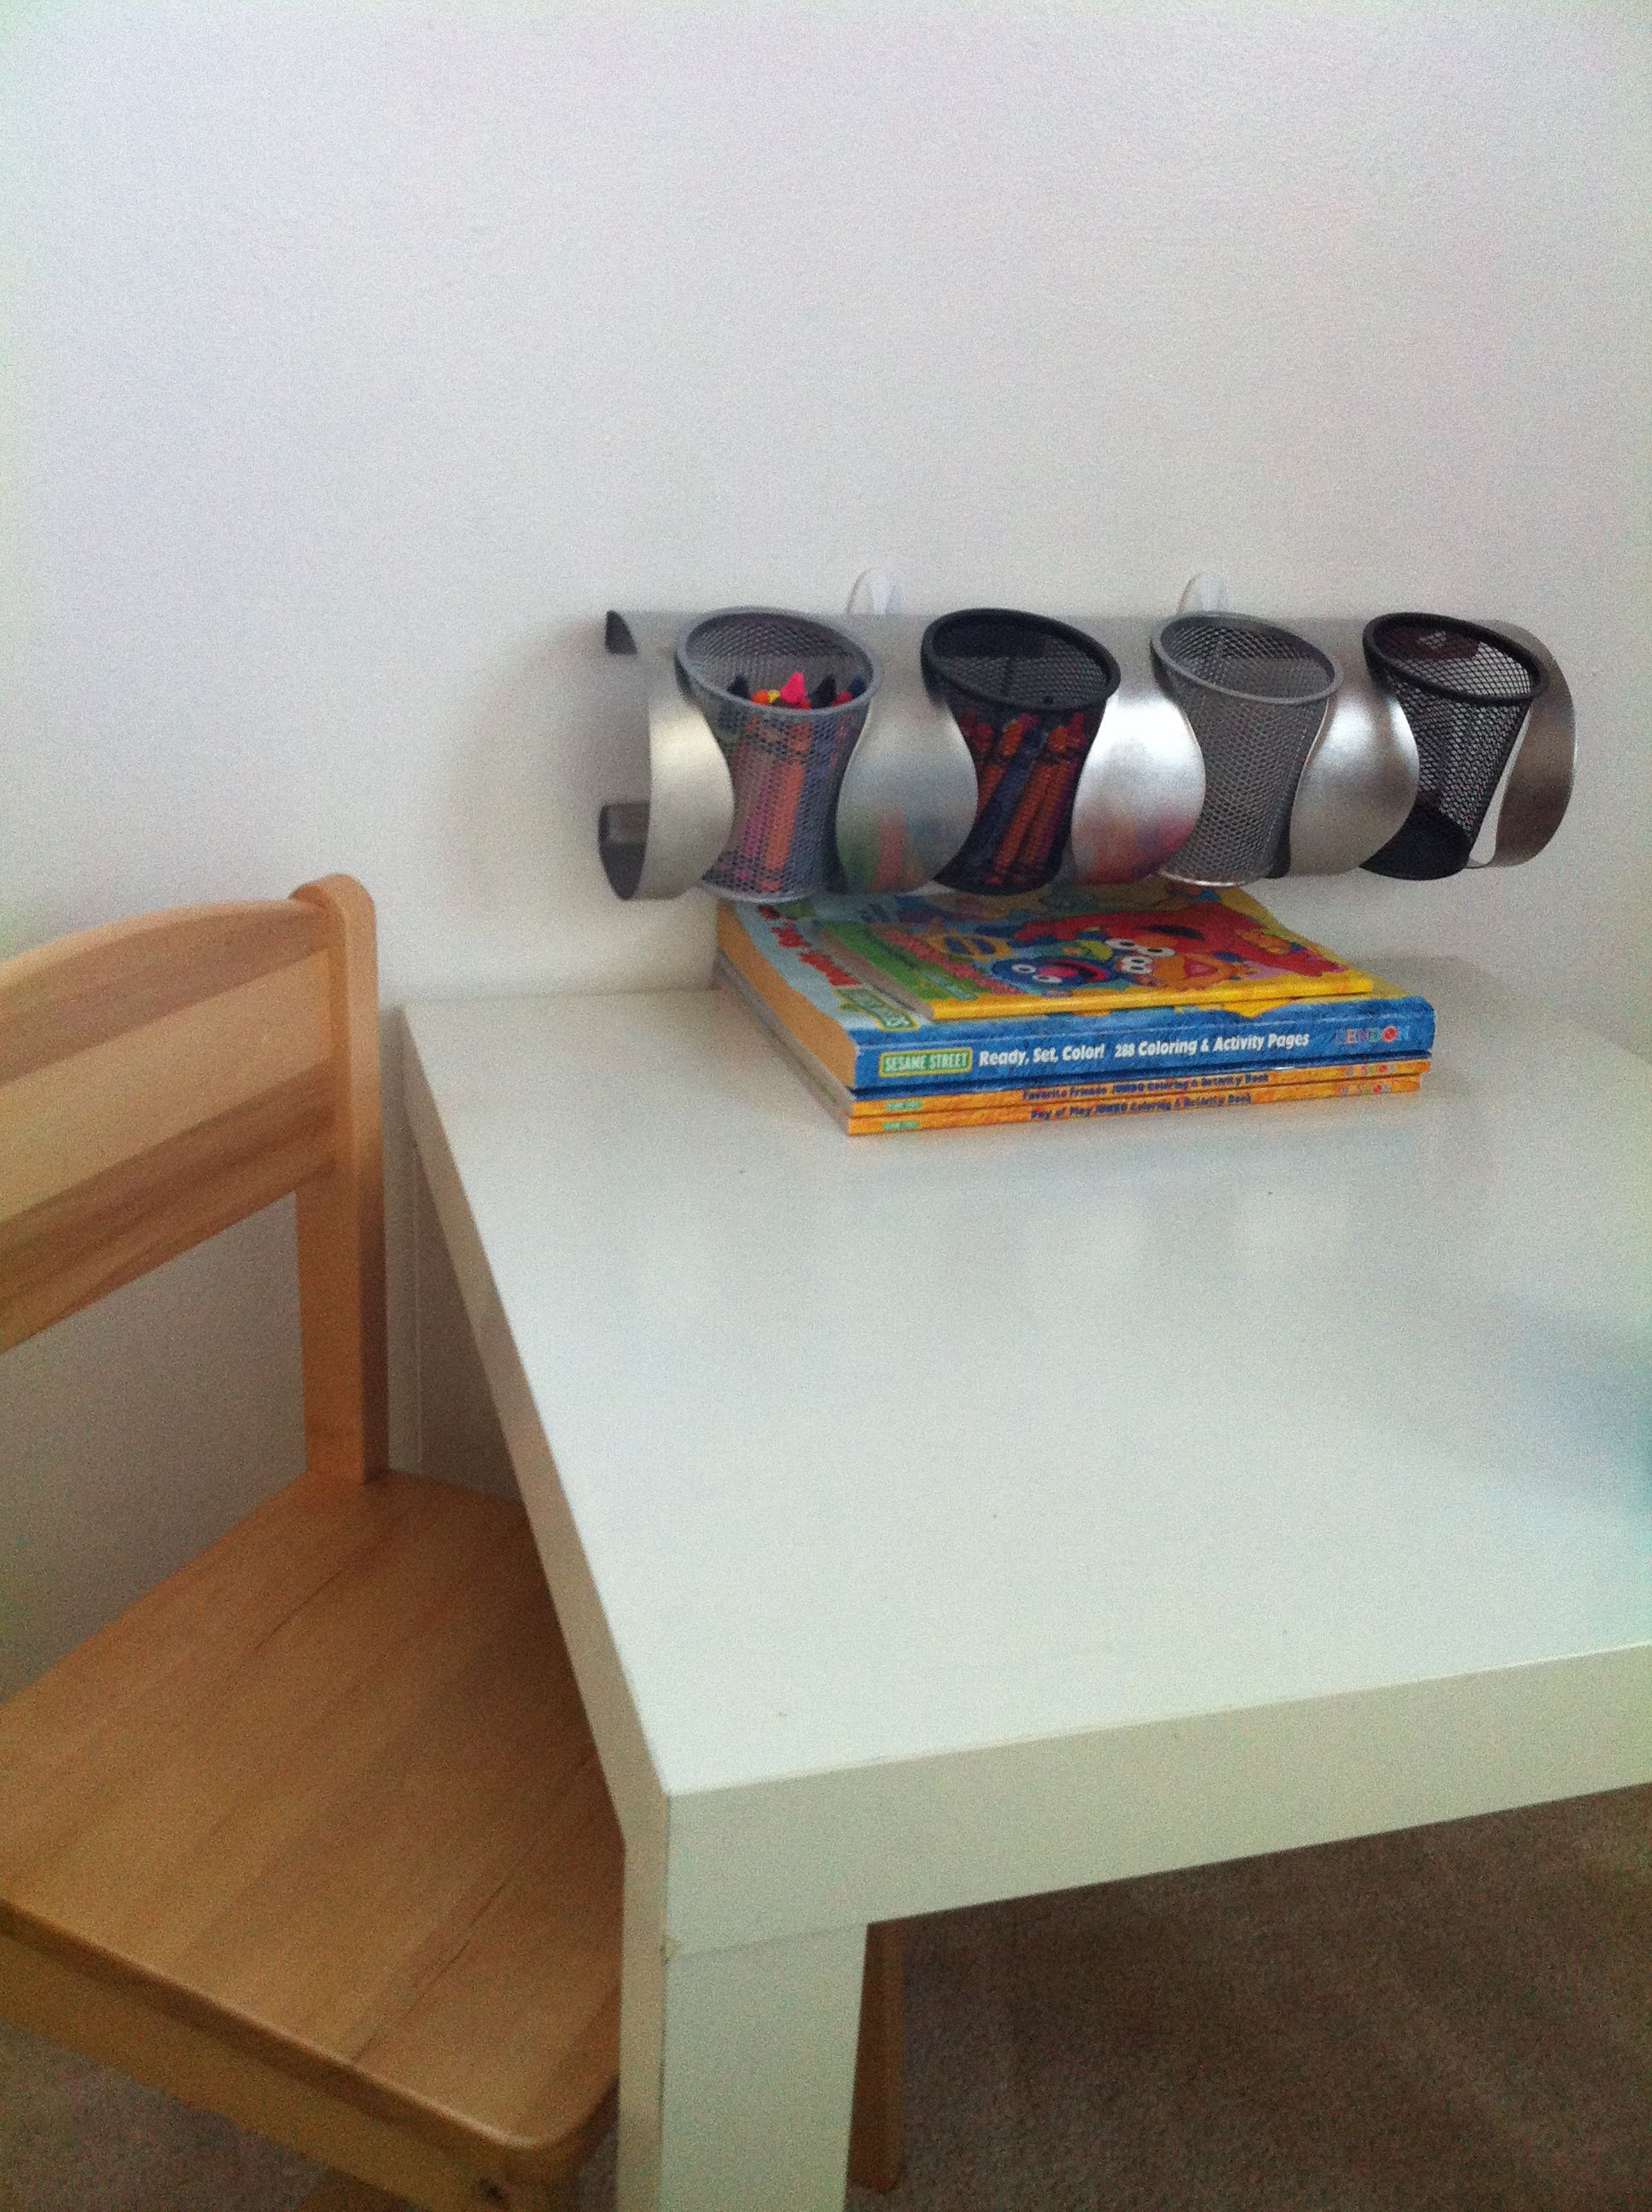 Repurposed Ikea Wine Rack Into A Craft Supplies Organizer For The